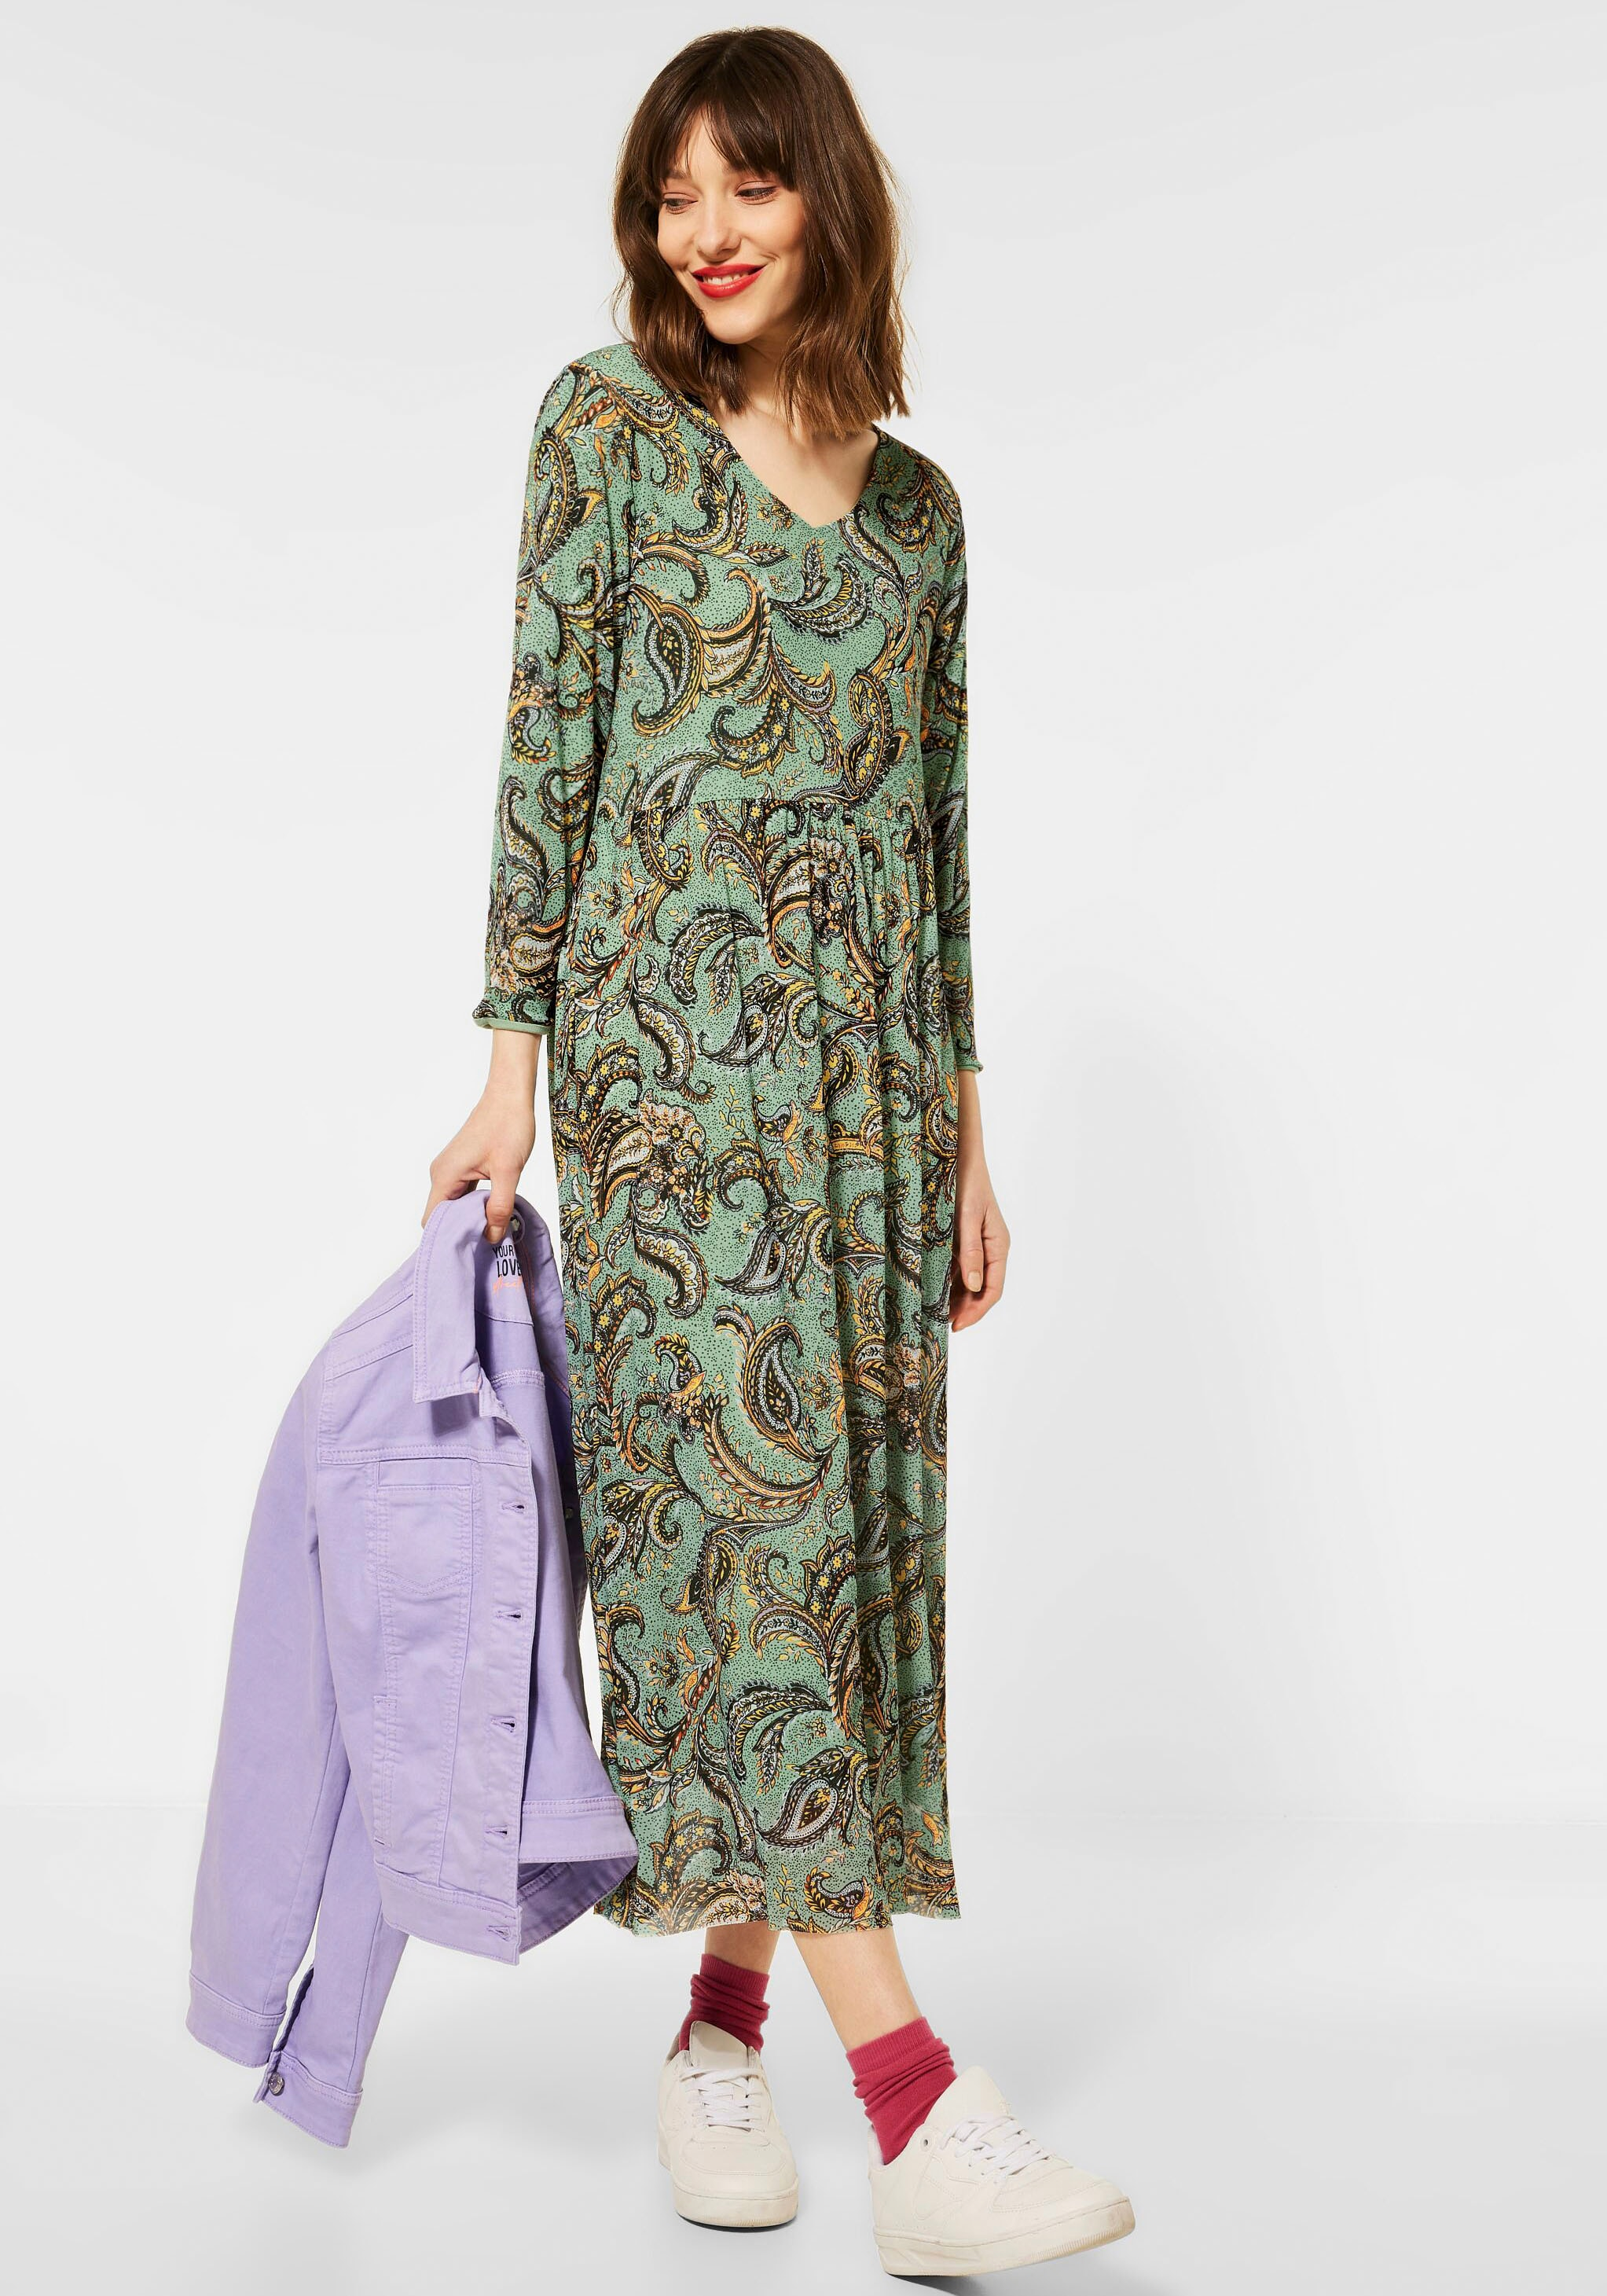 street one -  Maxikleid, mit Paisley-Muster